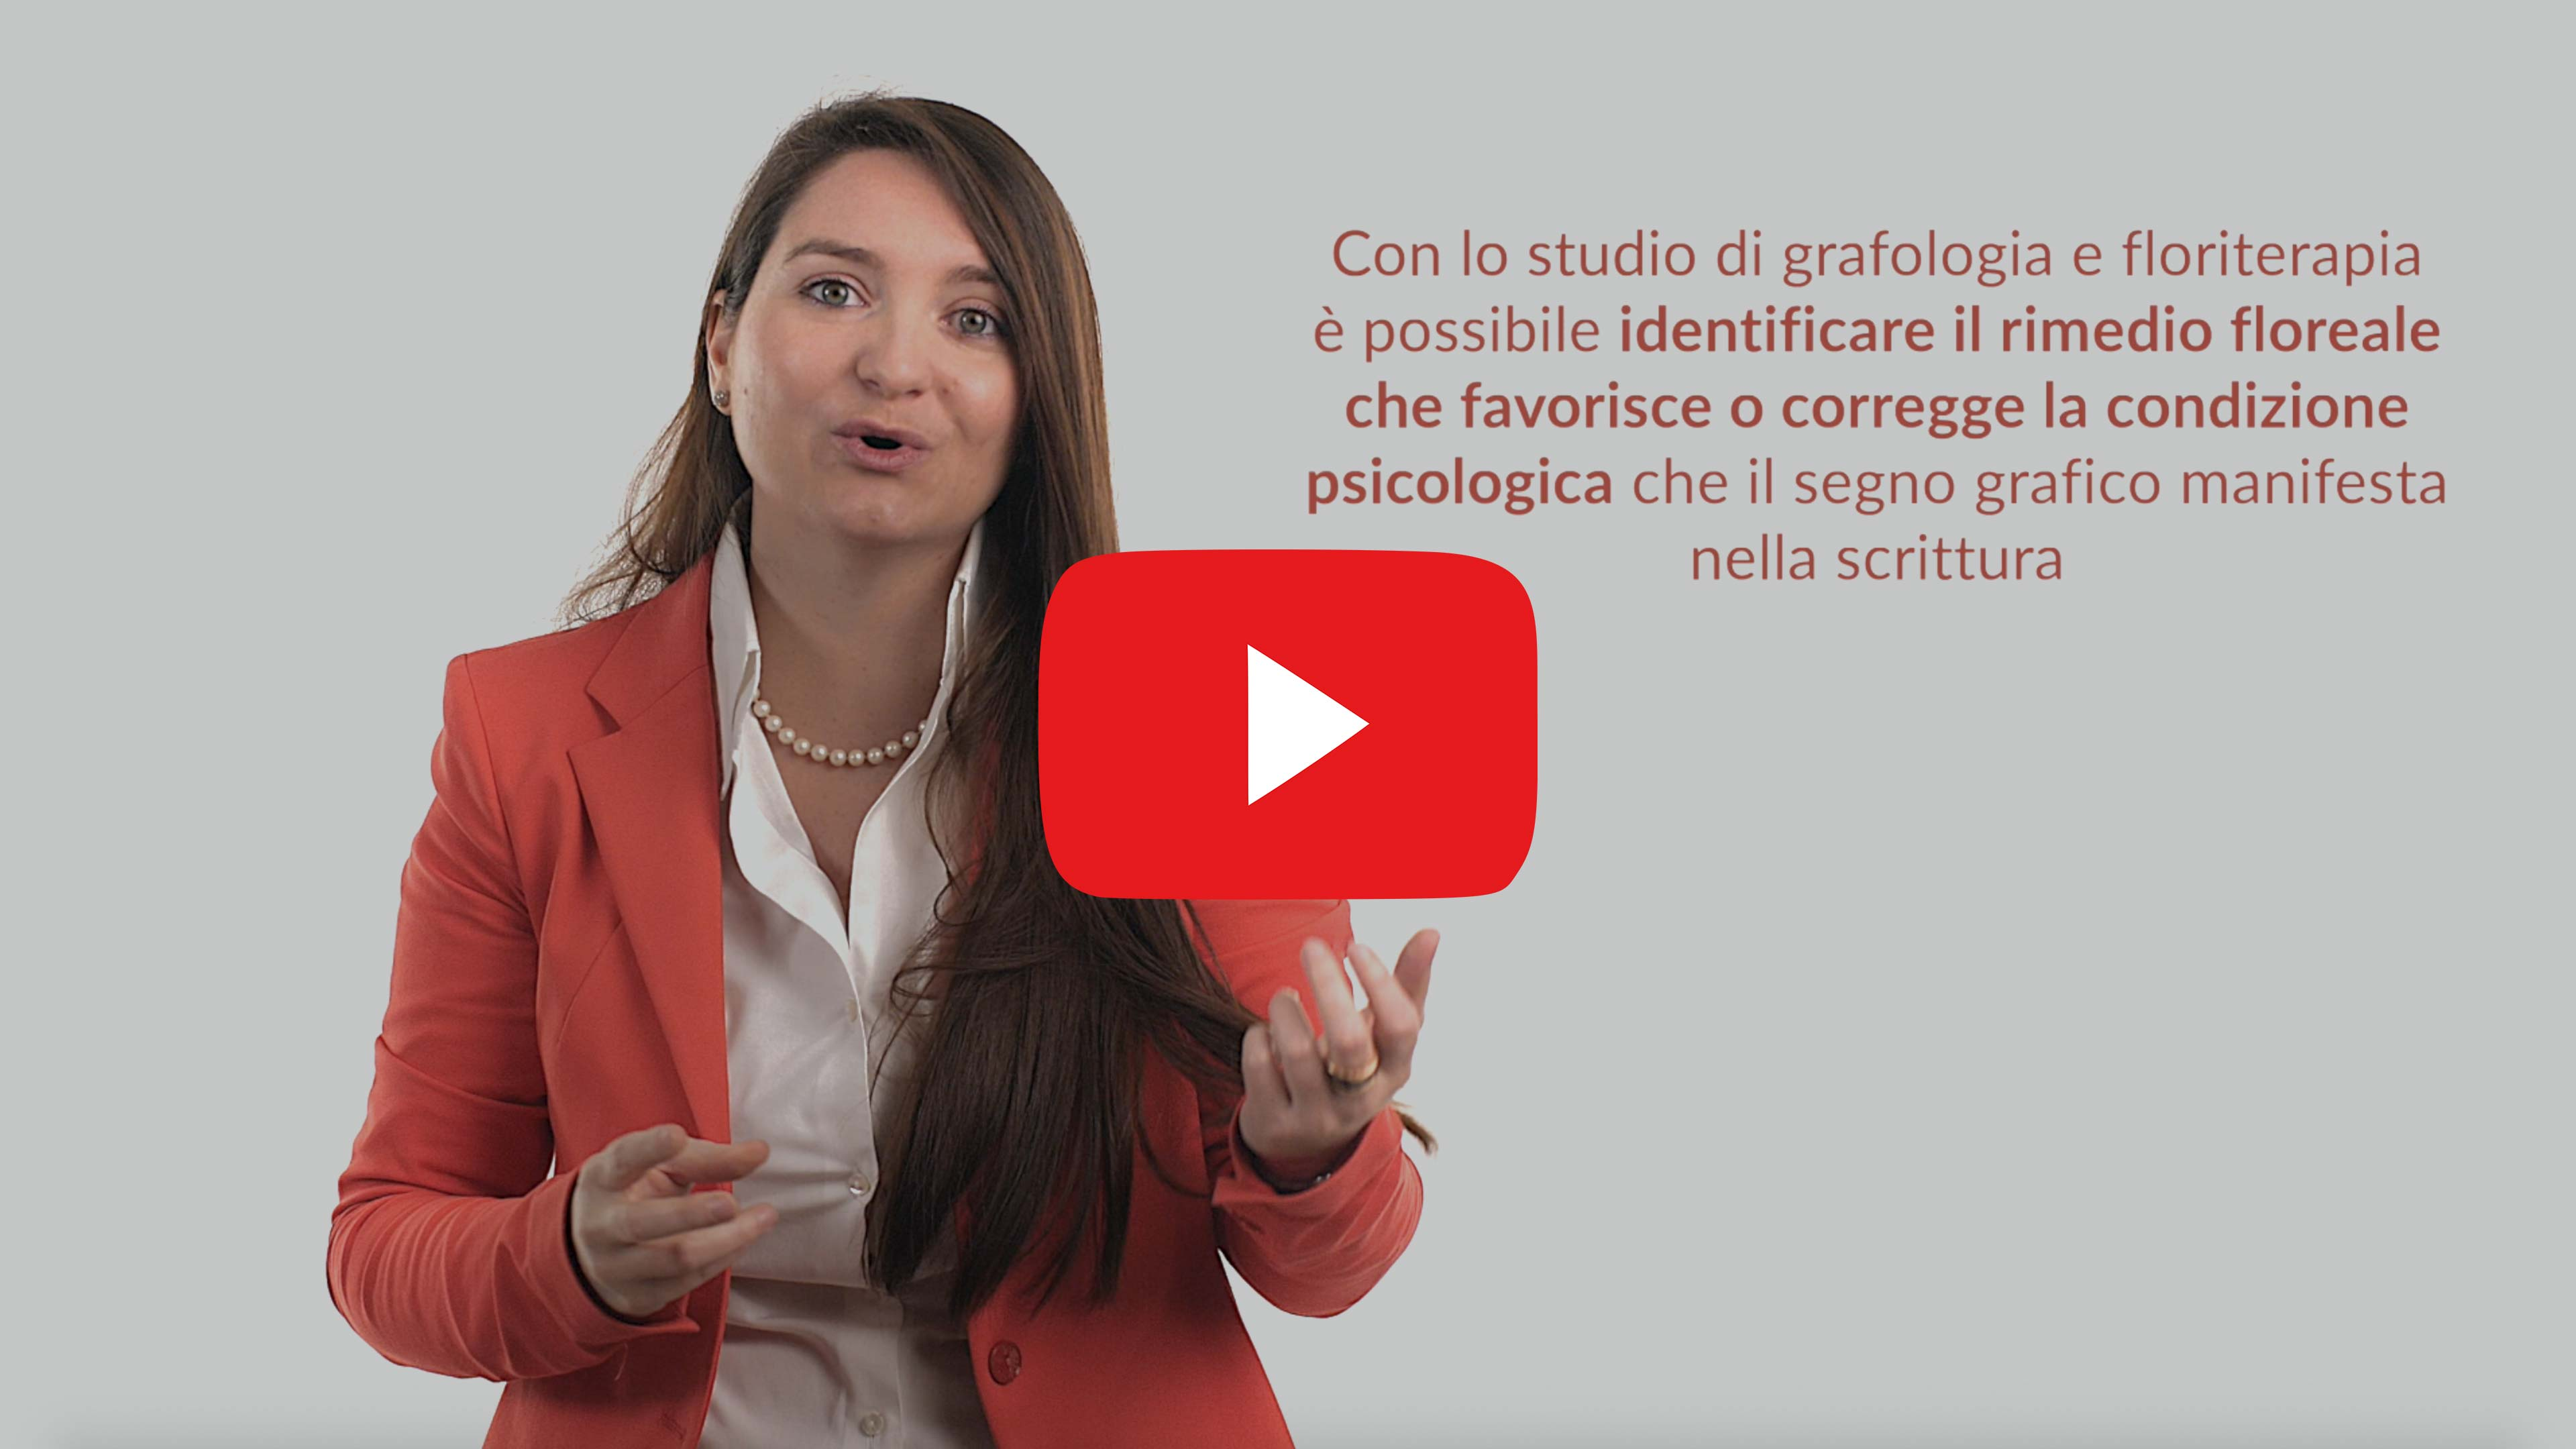 La grafologia associata alla floriterapia, video Youtube Grafologia360